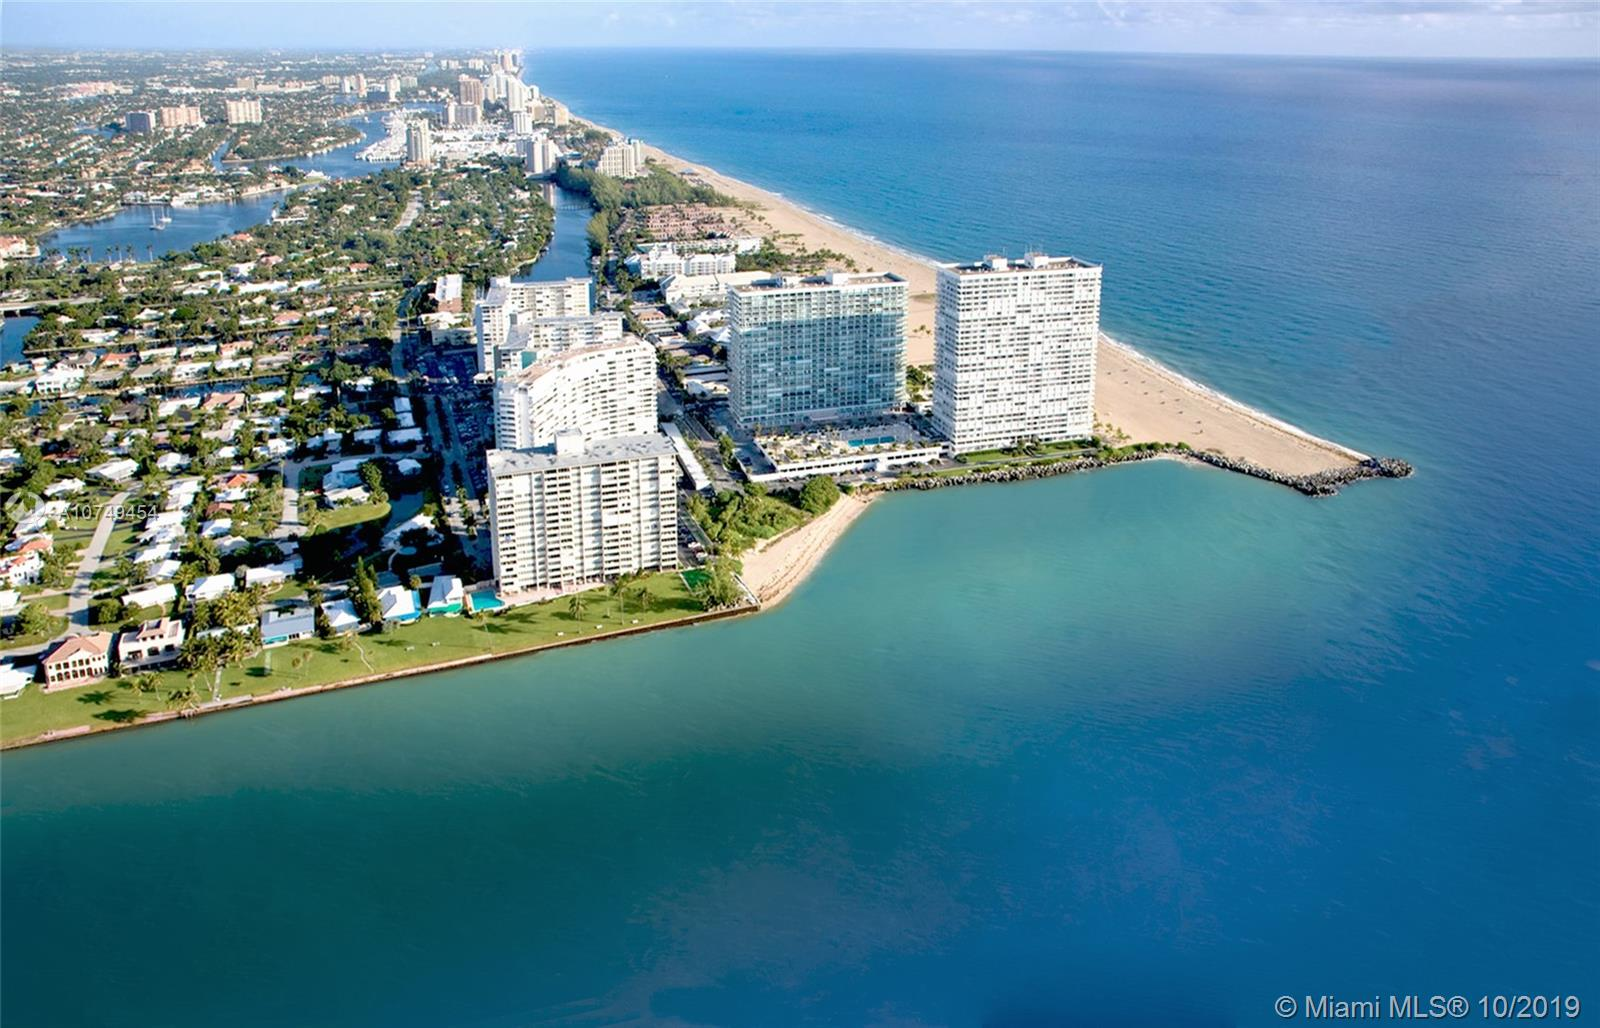 Brand new and no expense spared in the total renovation of this spectacular, one of a kind high floor SW & NW double corner at Point II. Truly the most spectacular 270 degree views from Miami to the Hillsboro Lighthouse from the new floor to ceiling impact windows and from the 870 sq. ft. wraparound terrace.  Approximately 3,795 square feet under air and includes custom kitchen and wet bar, oversized master suite with ocean view master spa bath, smart home system, motorized window treatments and much more.  New five star resort amenities include grand lobby, restaurant, fitness center, guest hotel rooms, lush pools & beach service on the widest beach in Fort Lauderdale.